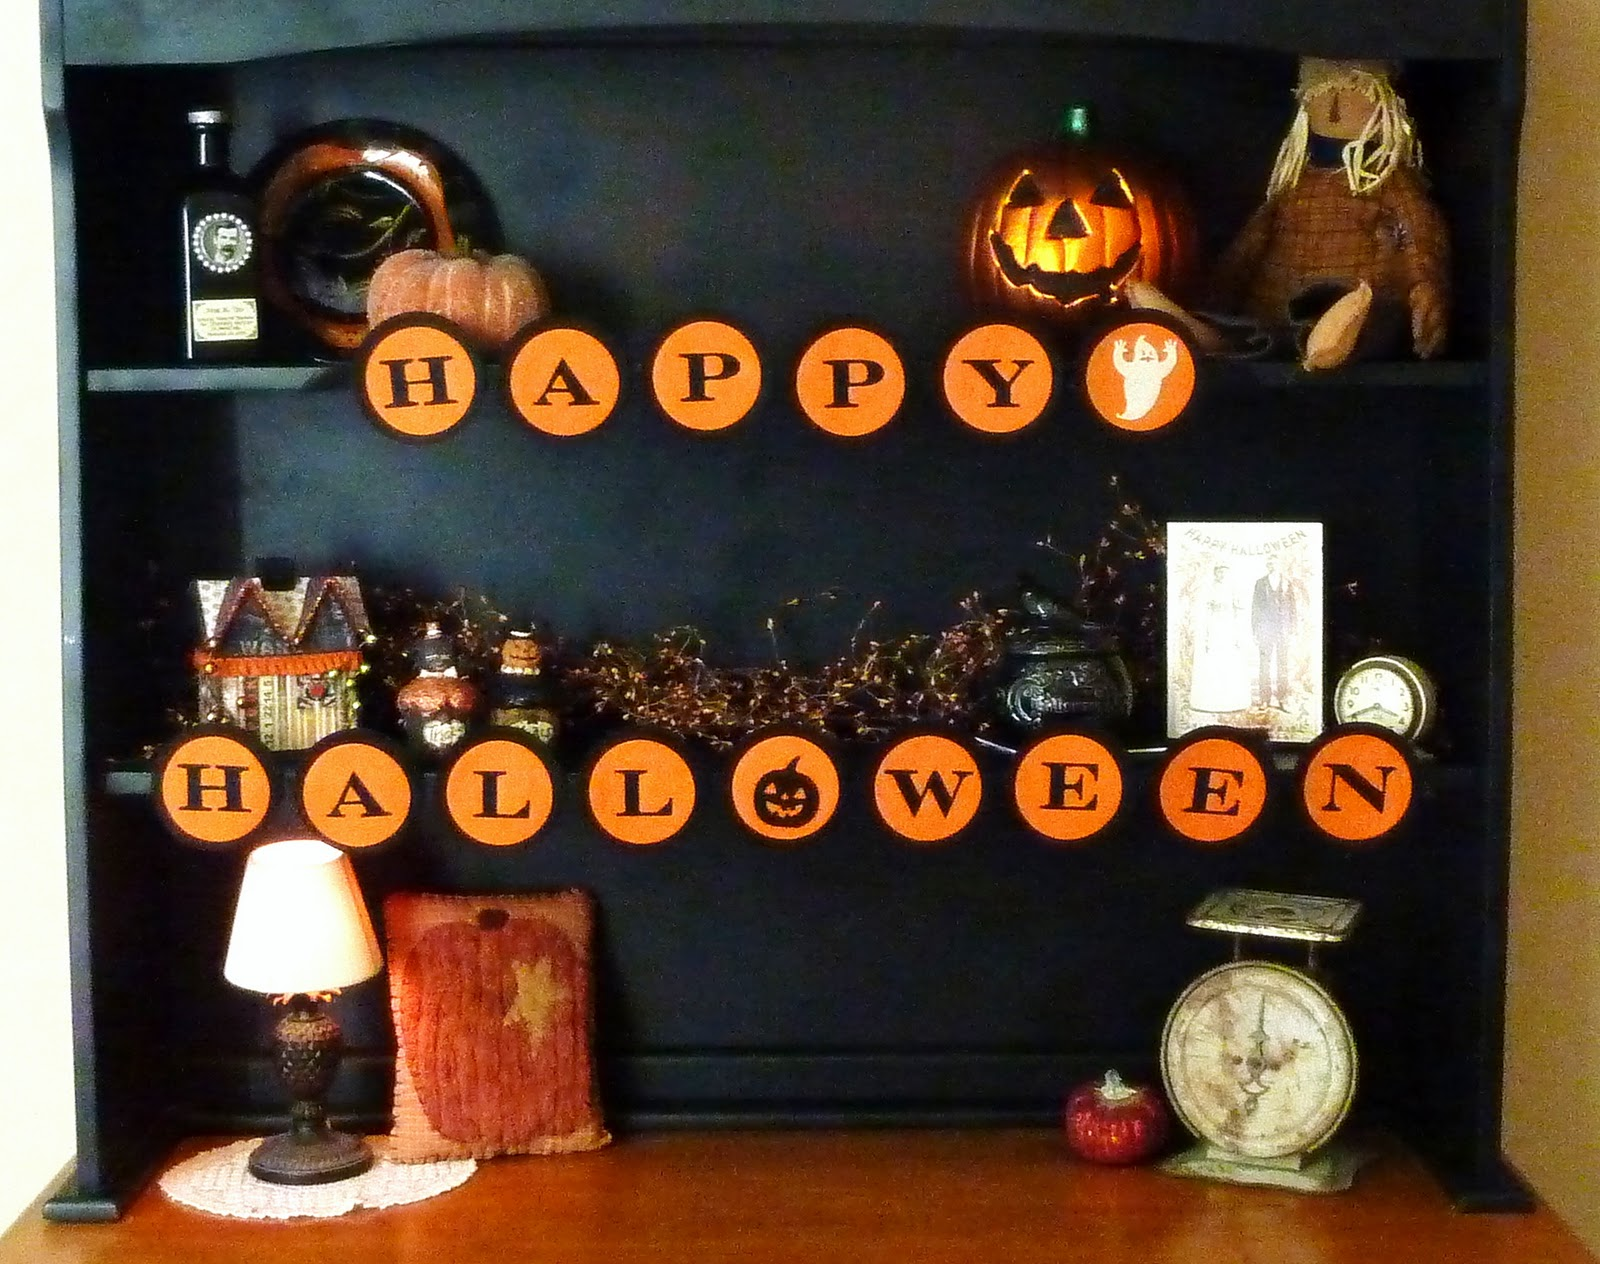 Halloween kitchen decor - This Is The Hutch In Our Breakfast Room Right Next To Where We Eat In The Kitchen I Just Clear It Out Each Season And Fill It Up The Happy Halloween Is